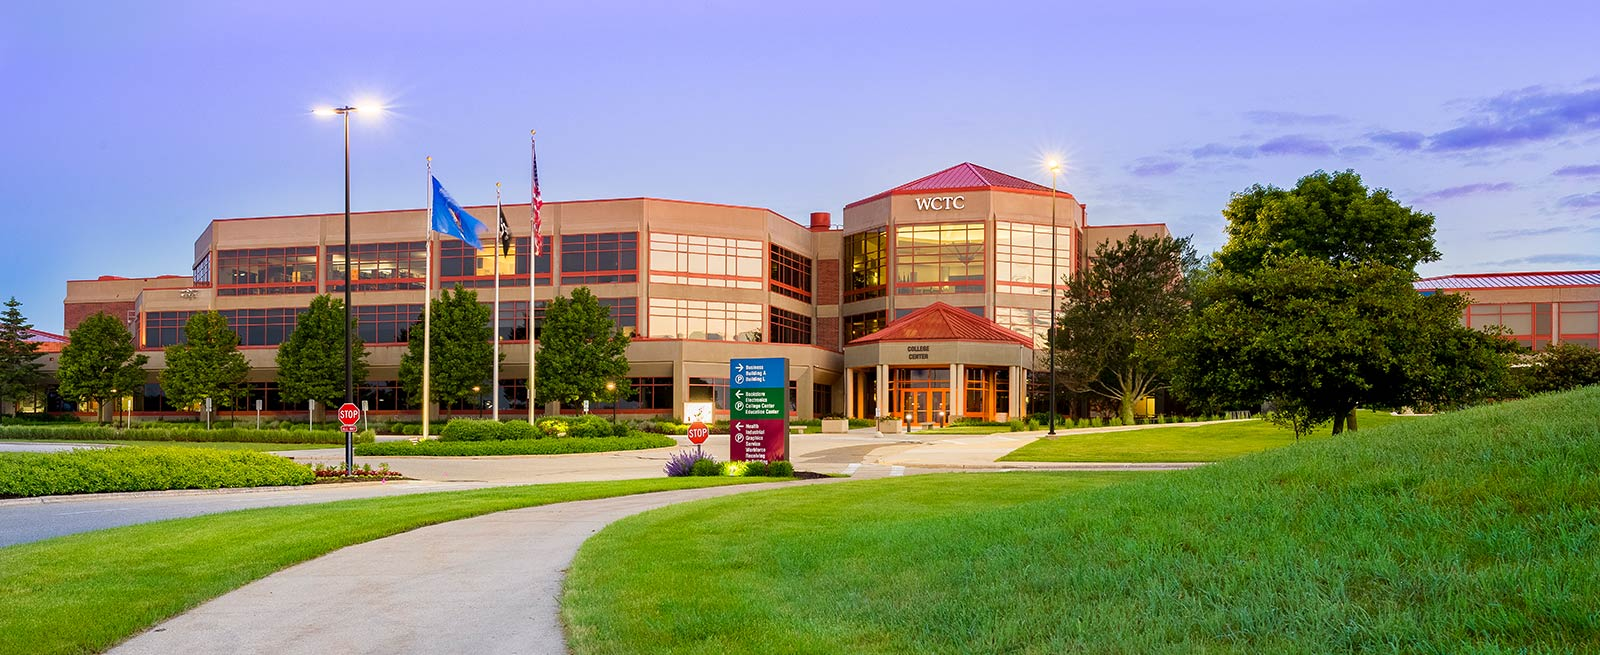 On-Site Services Case Study: Waukesha County Technical College